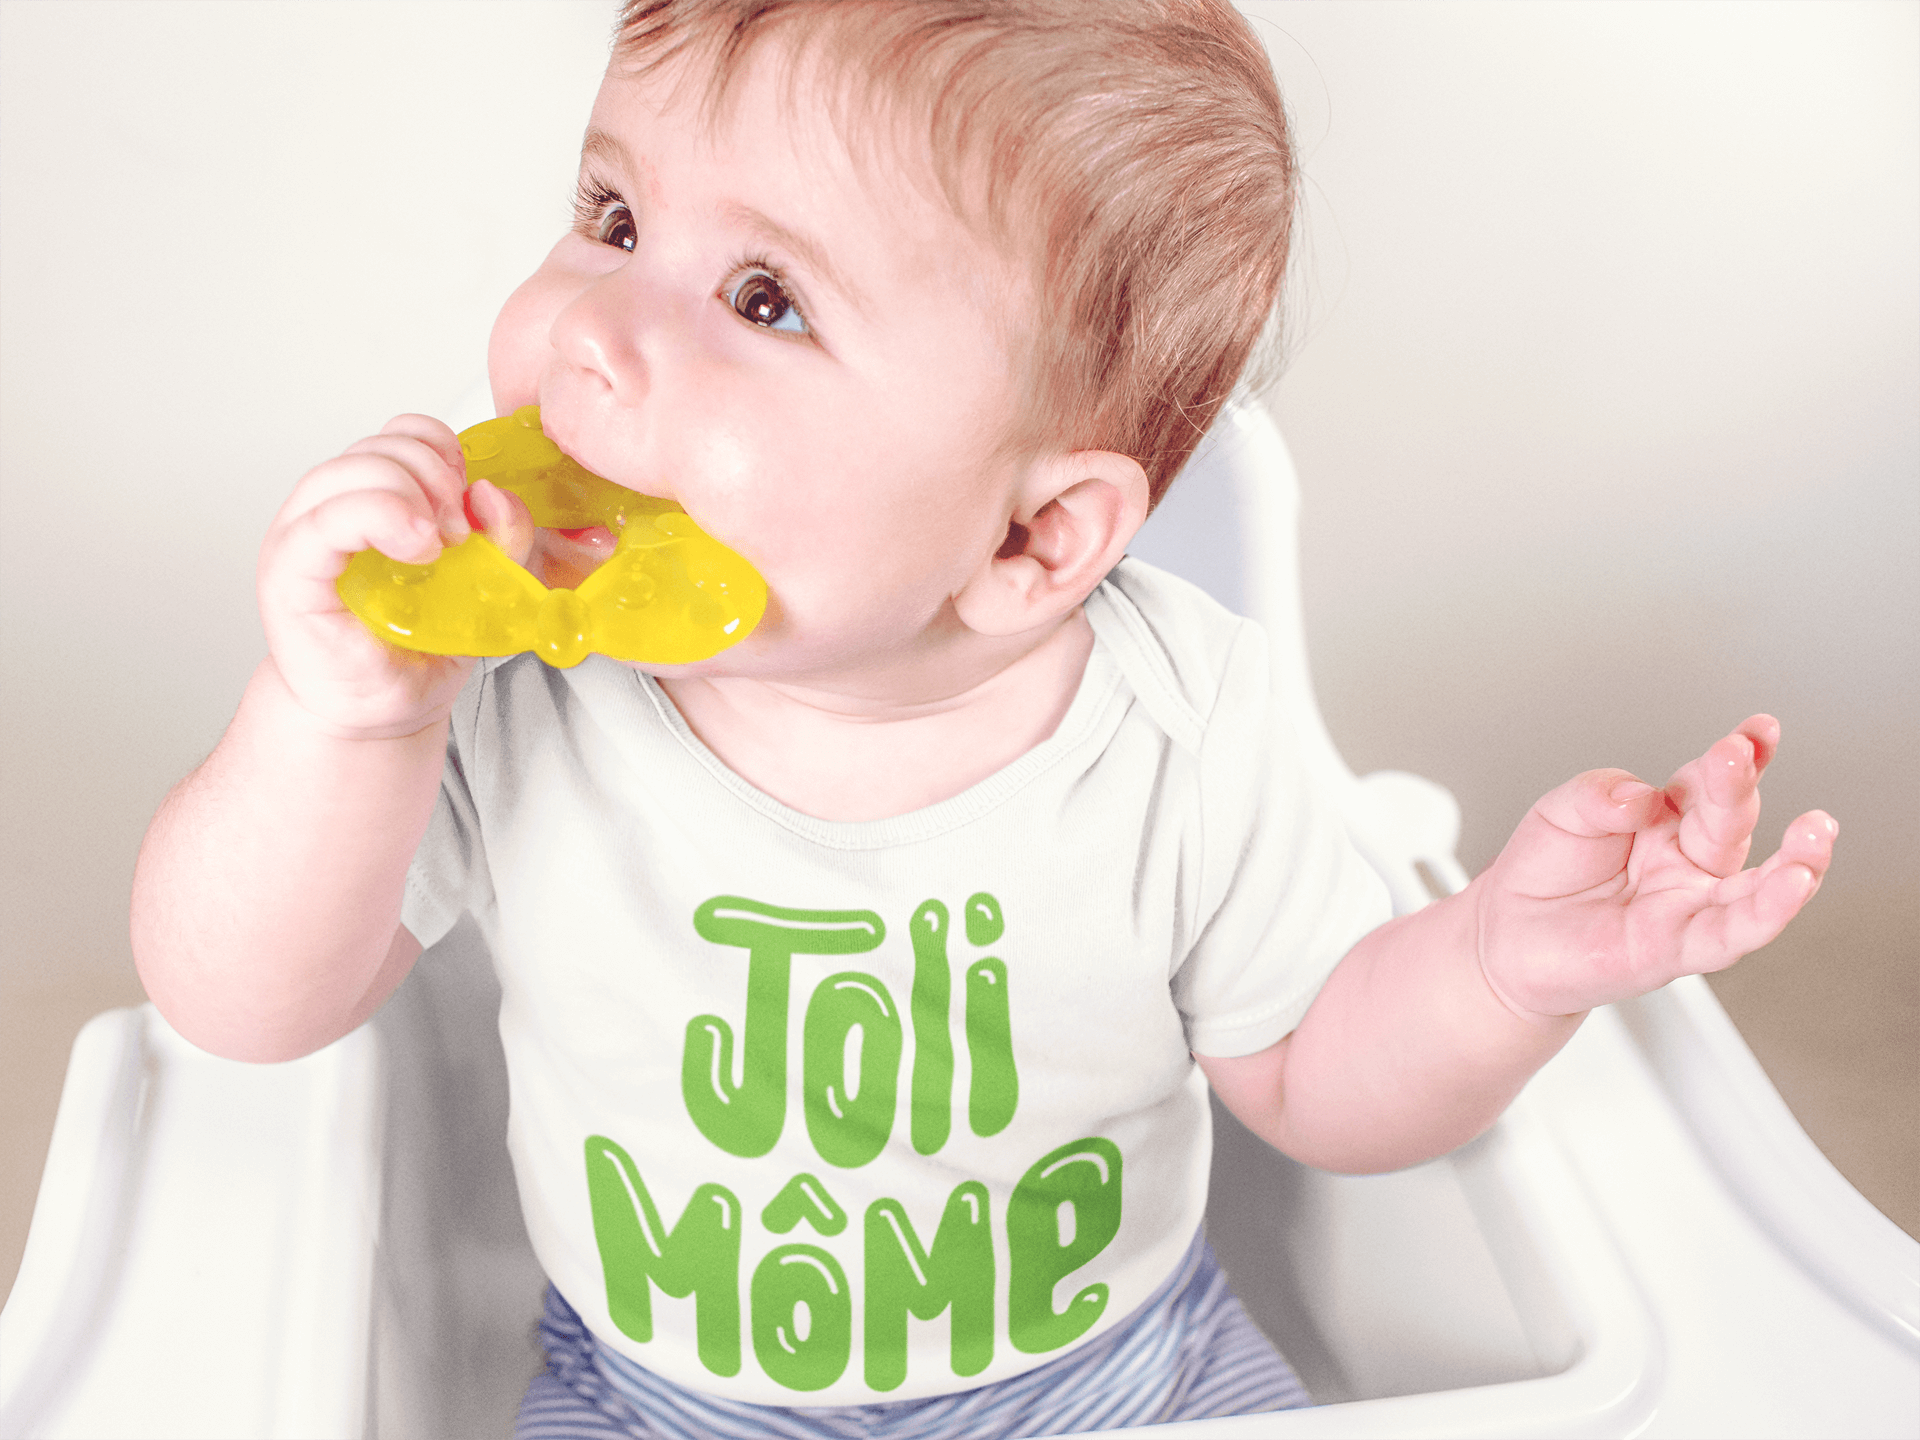 Baby onesie Joli mome translates to handsome boy